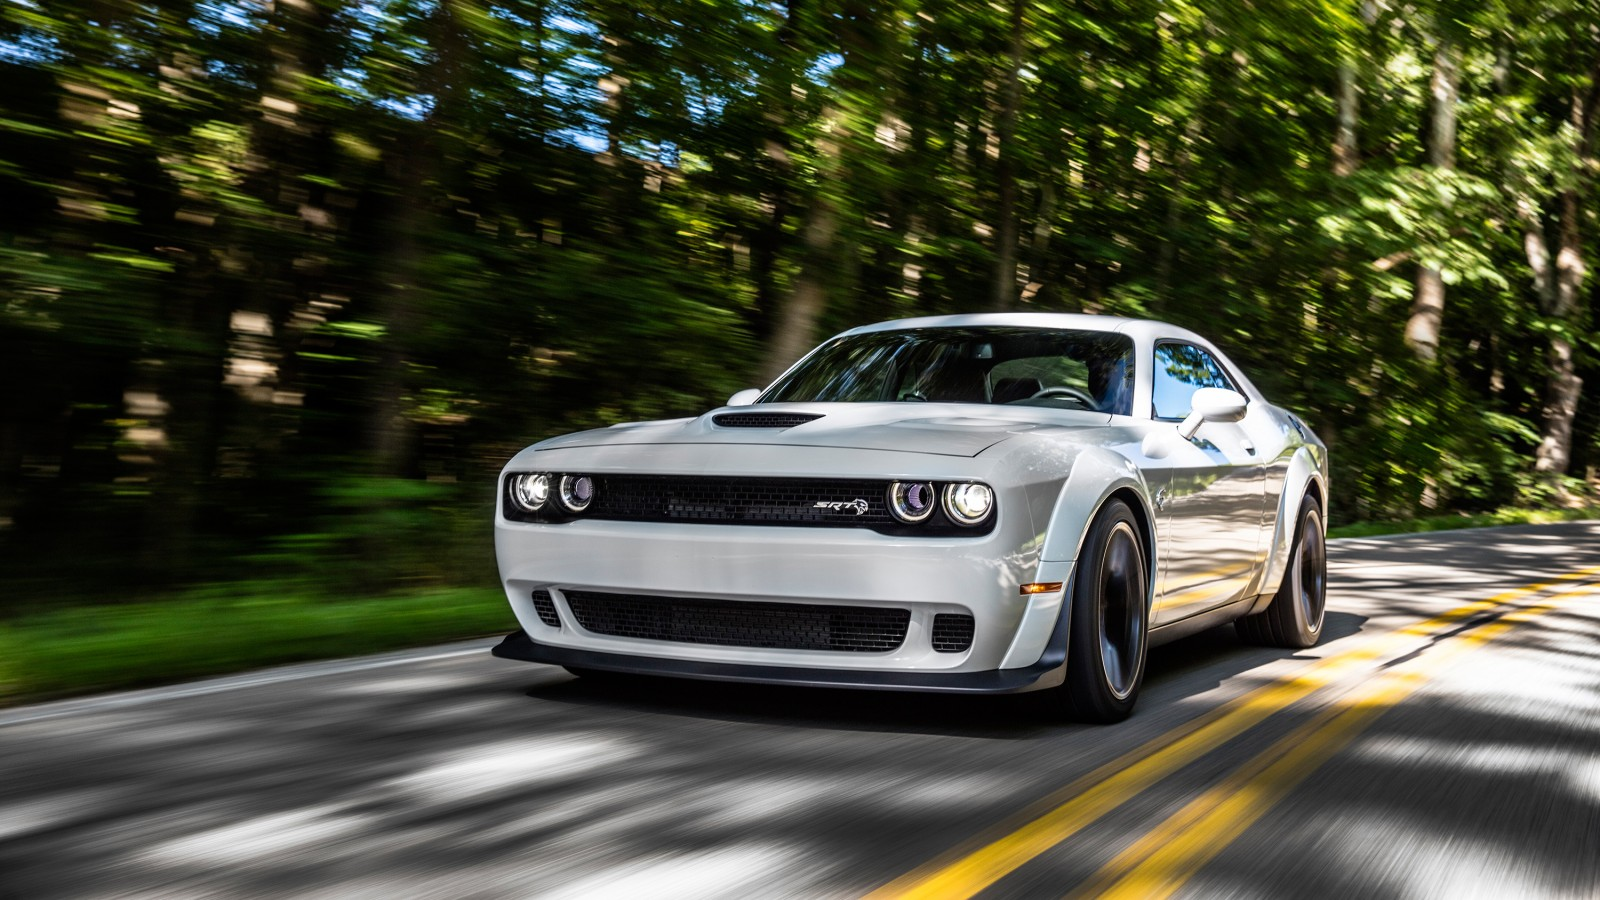 2018 Dodge Challenger Srt Hellcat Widebody 4 Wallpaper